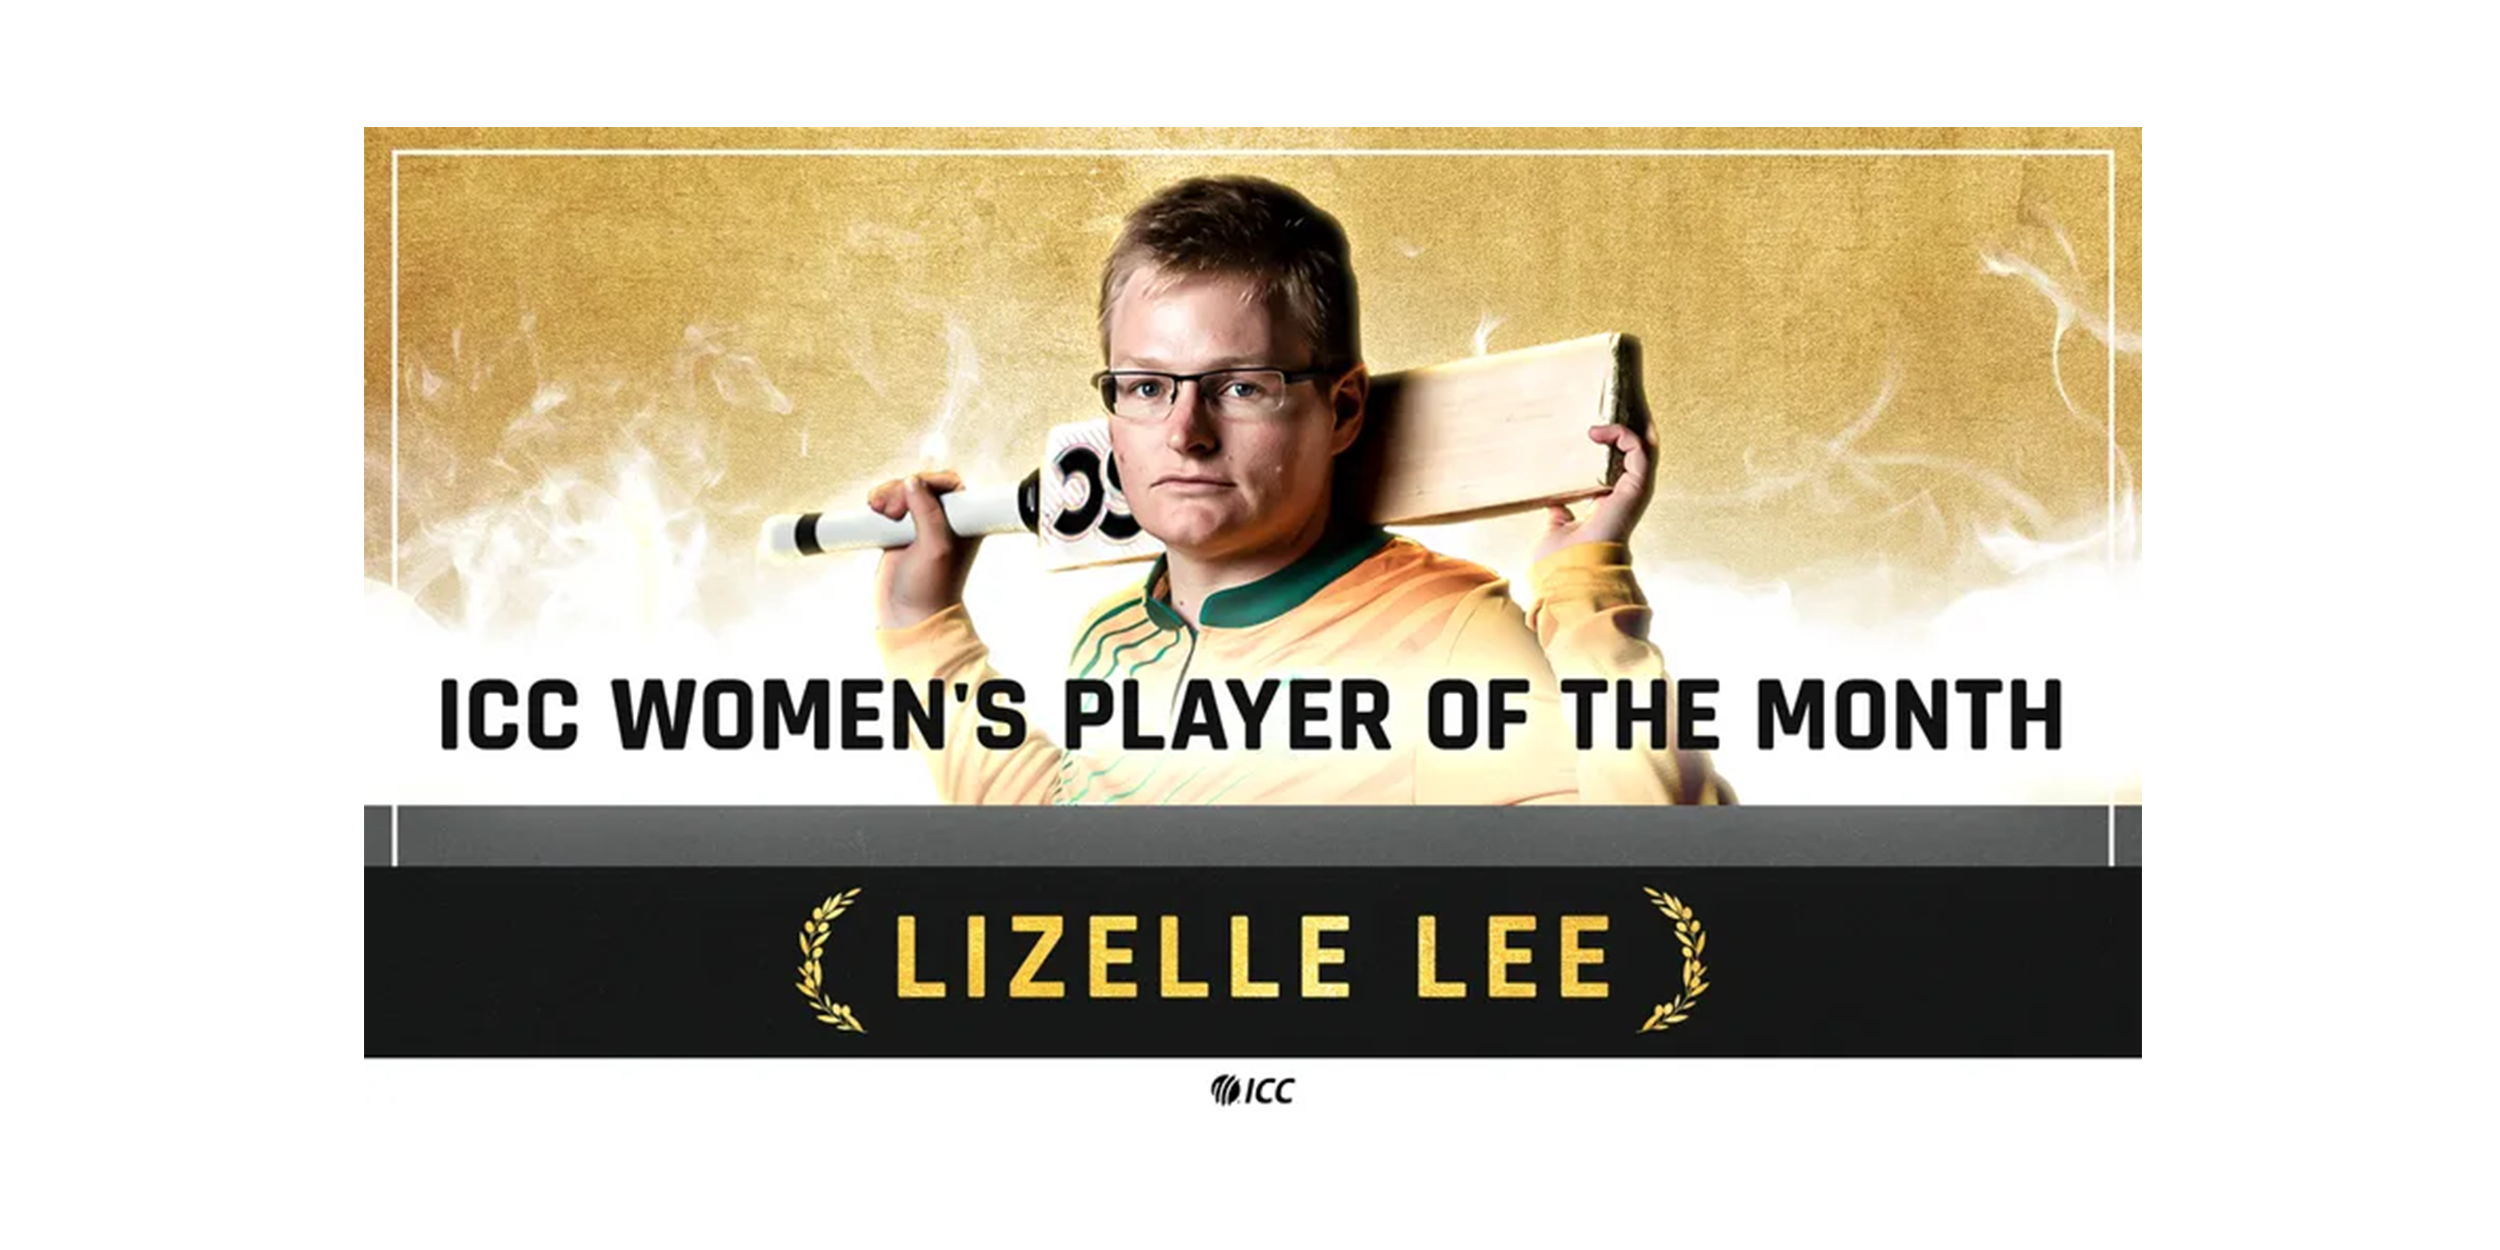 Lizelle Lee and Bhuvneshwar Kumar voted ICC Players of the Month for March 2021